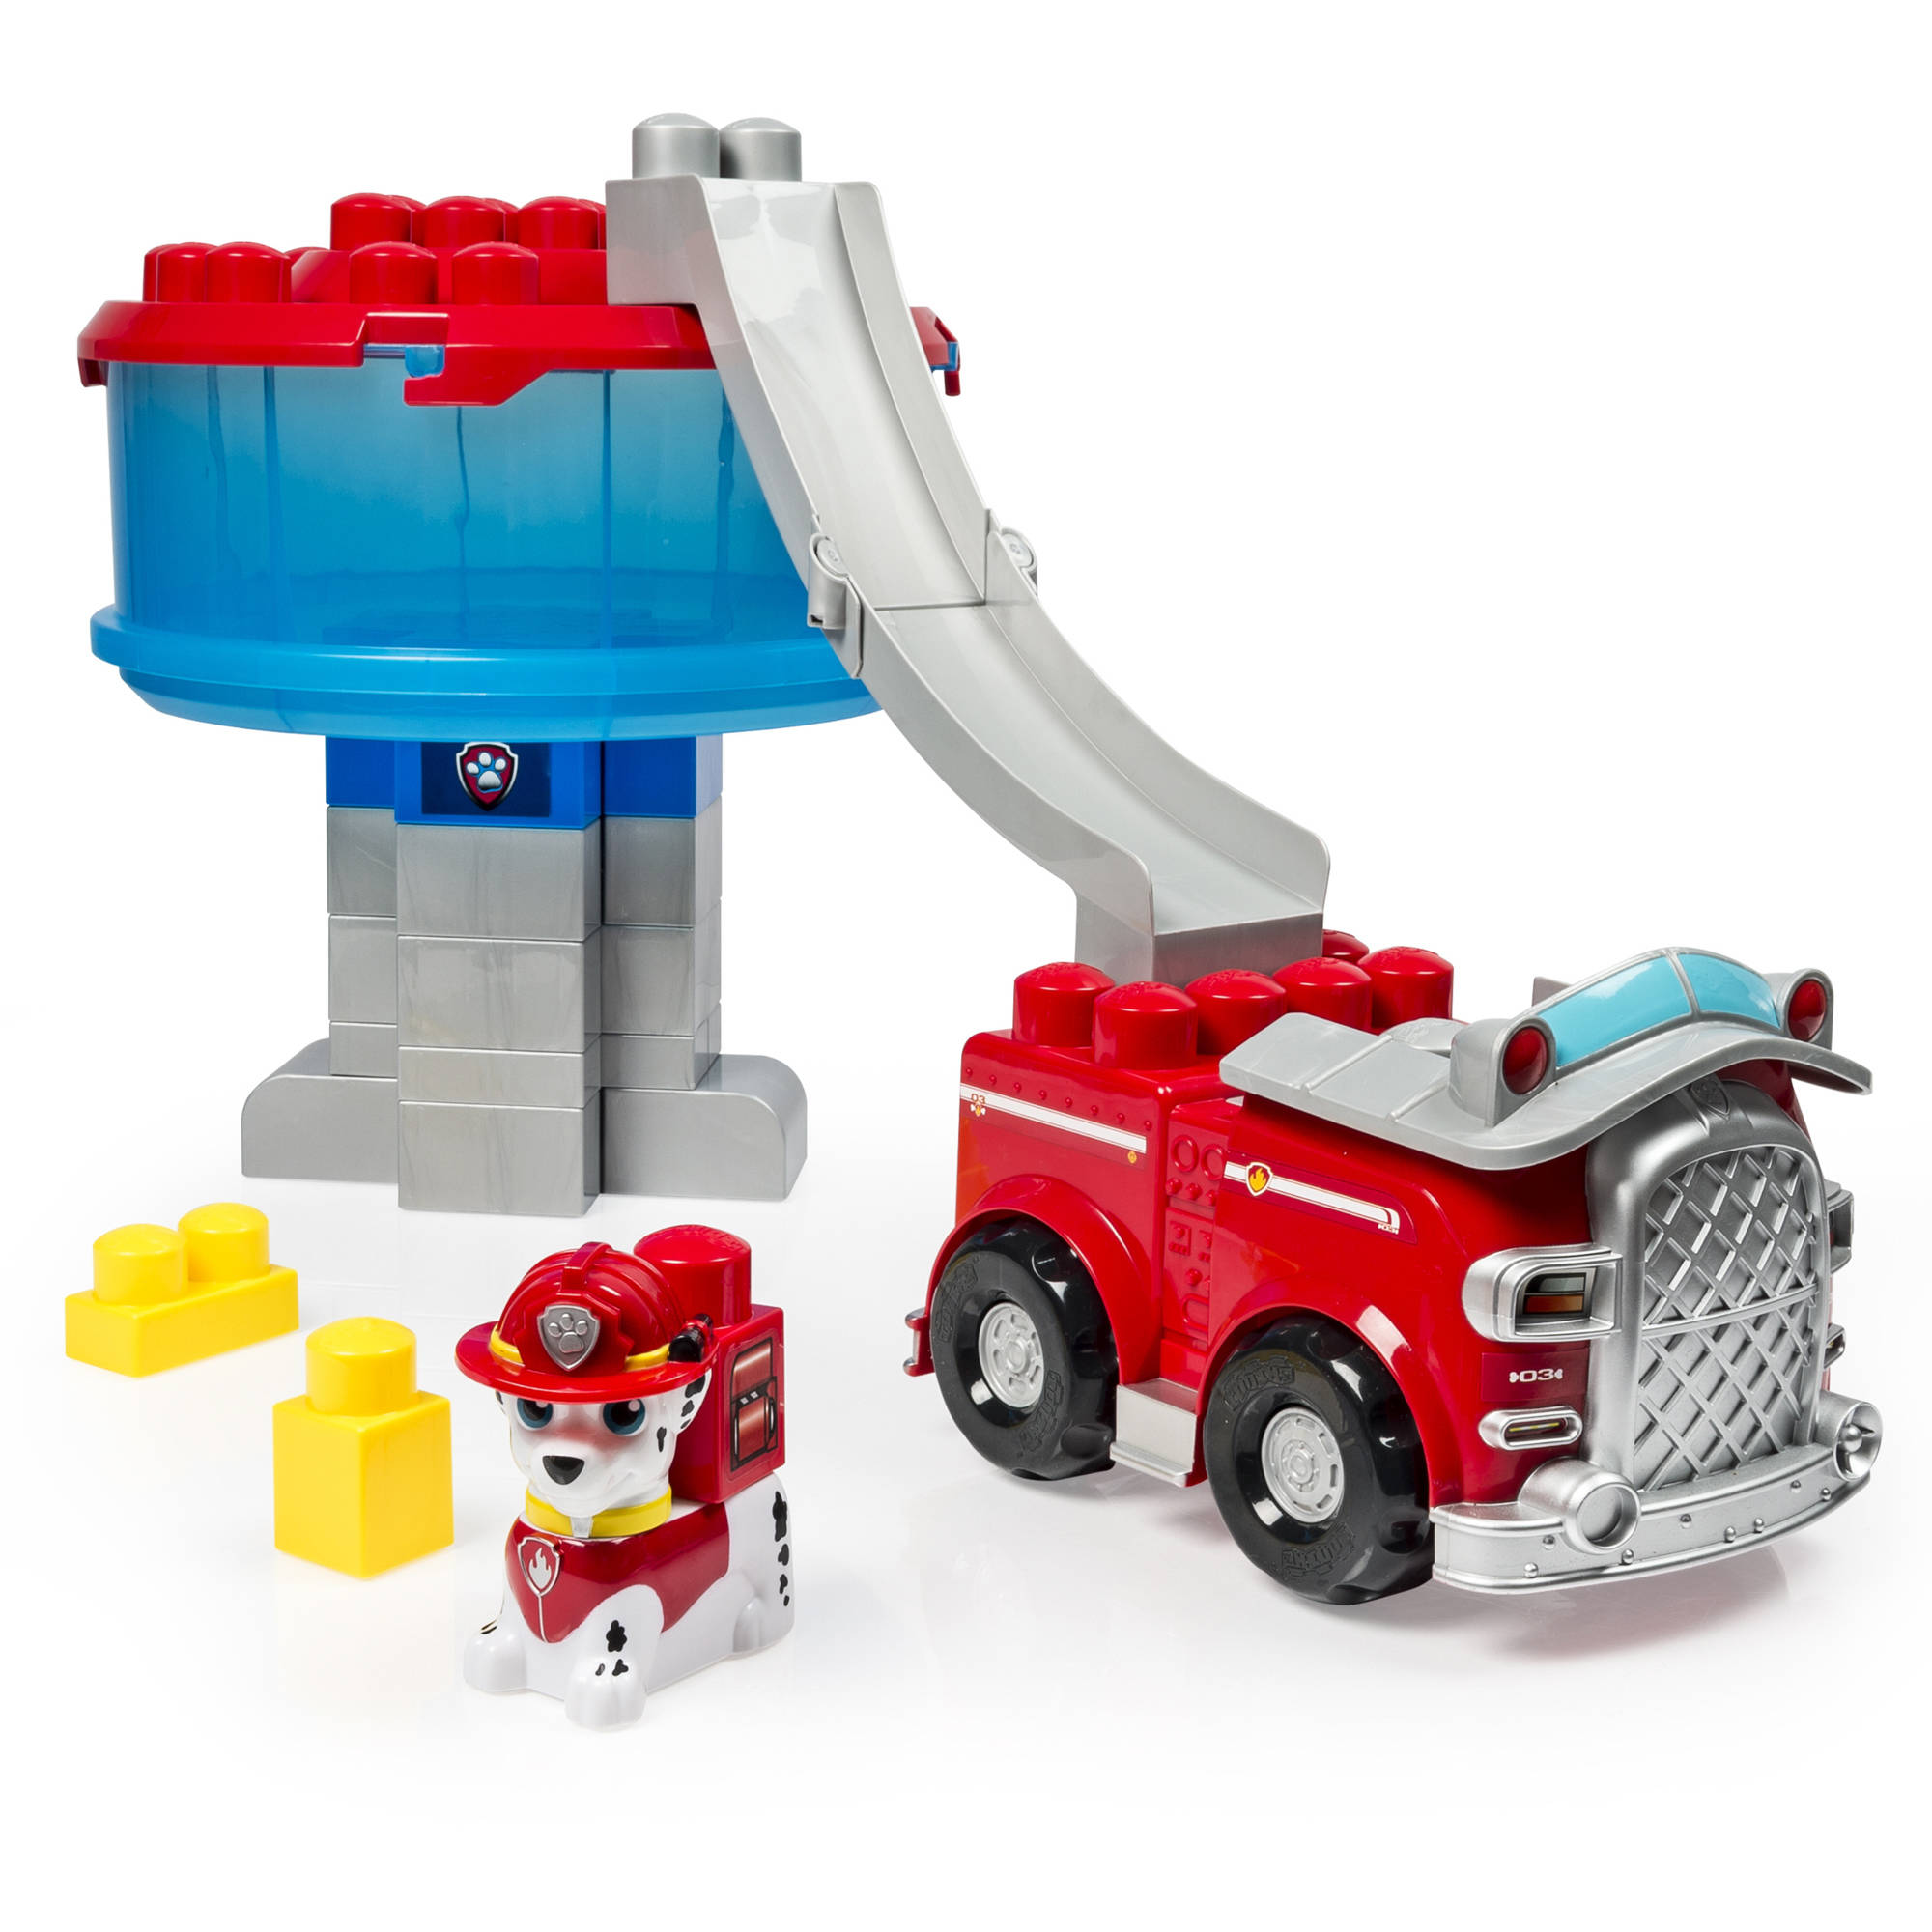 IONIX Jr. PAW Patrol Tower Block Set by Spin Master Ltd